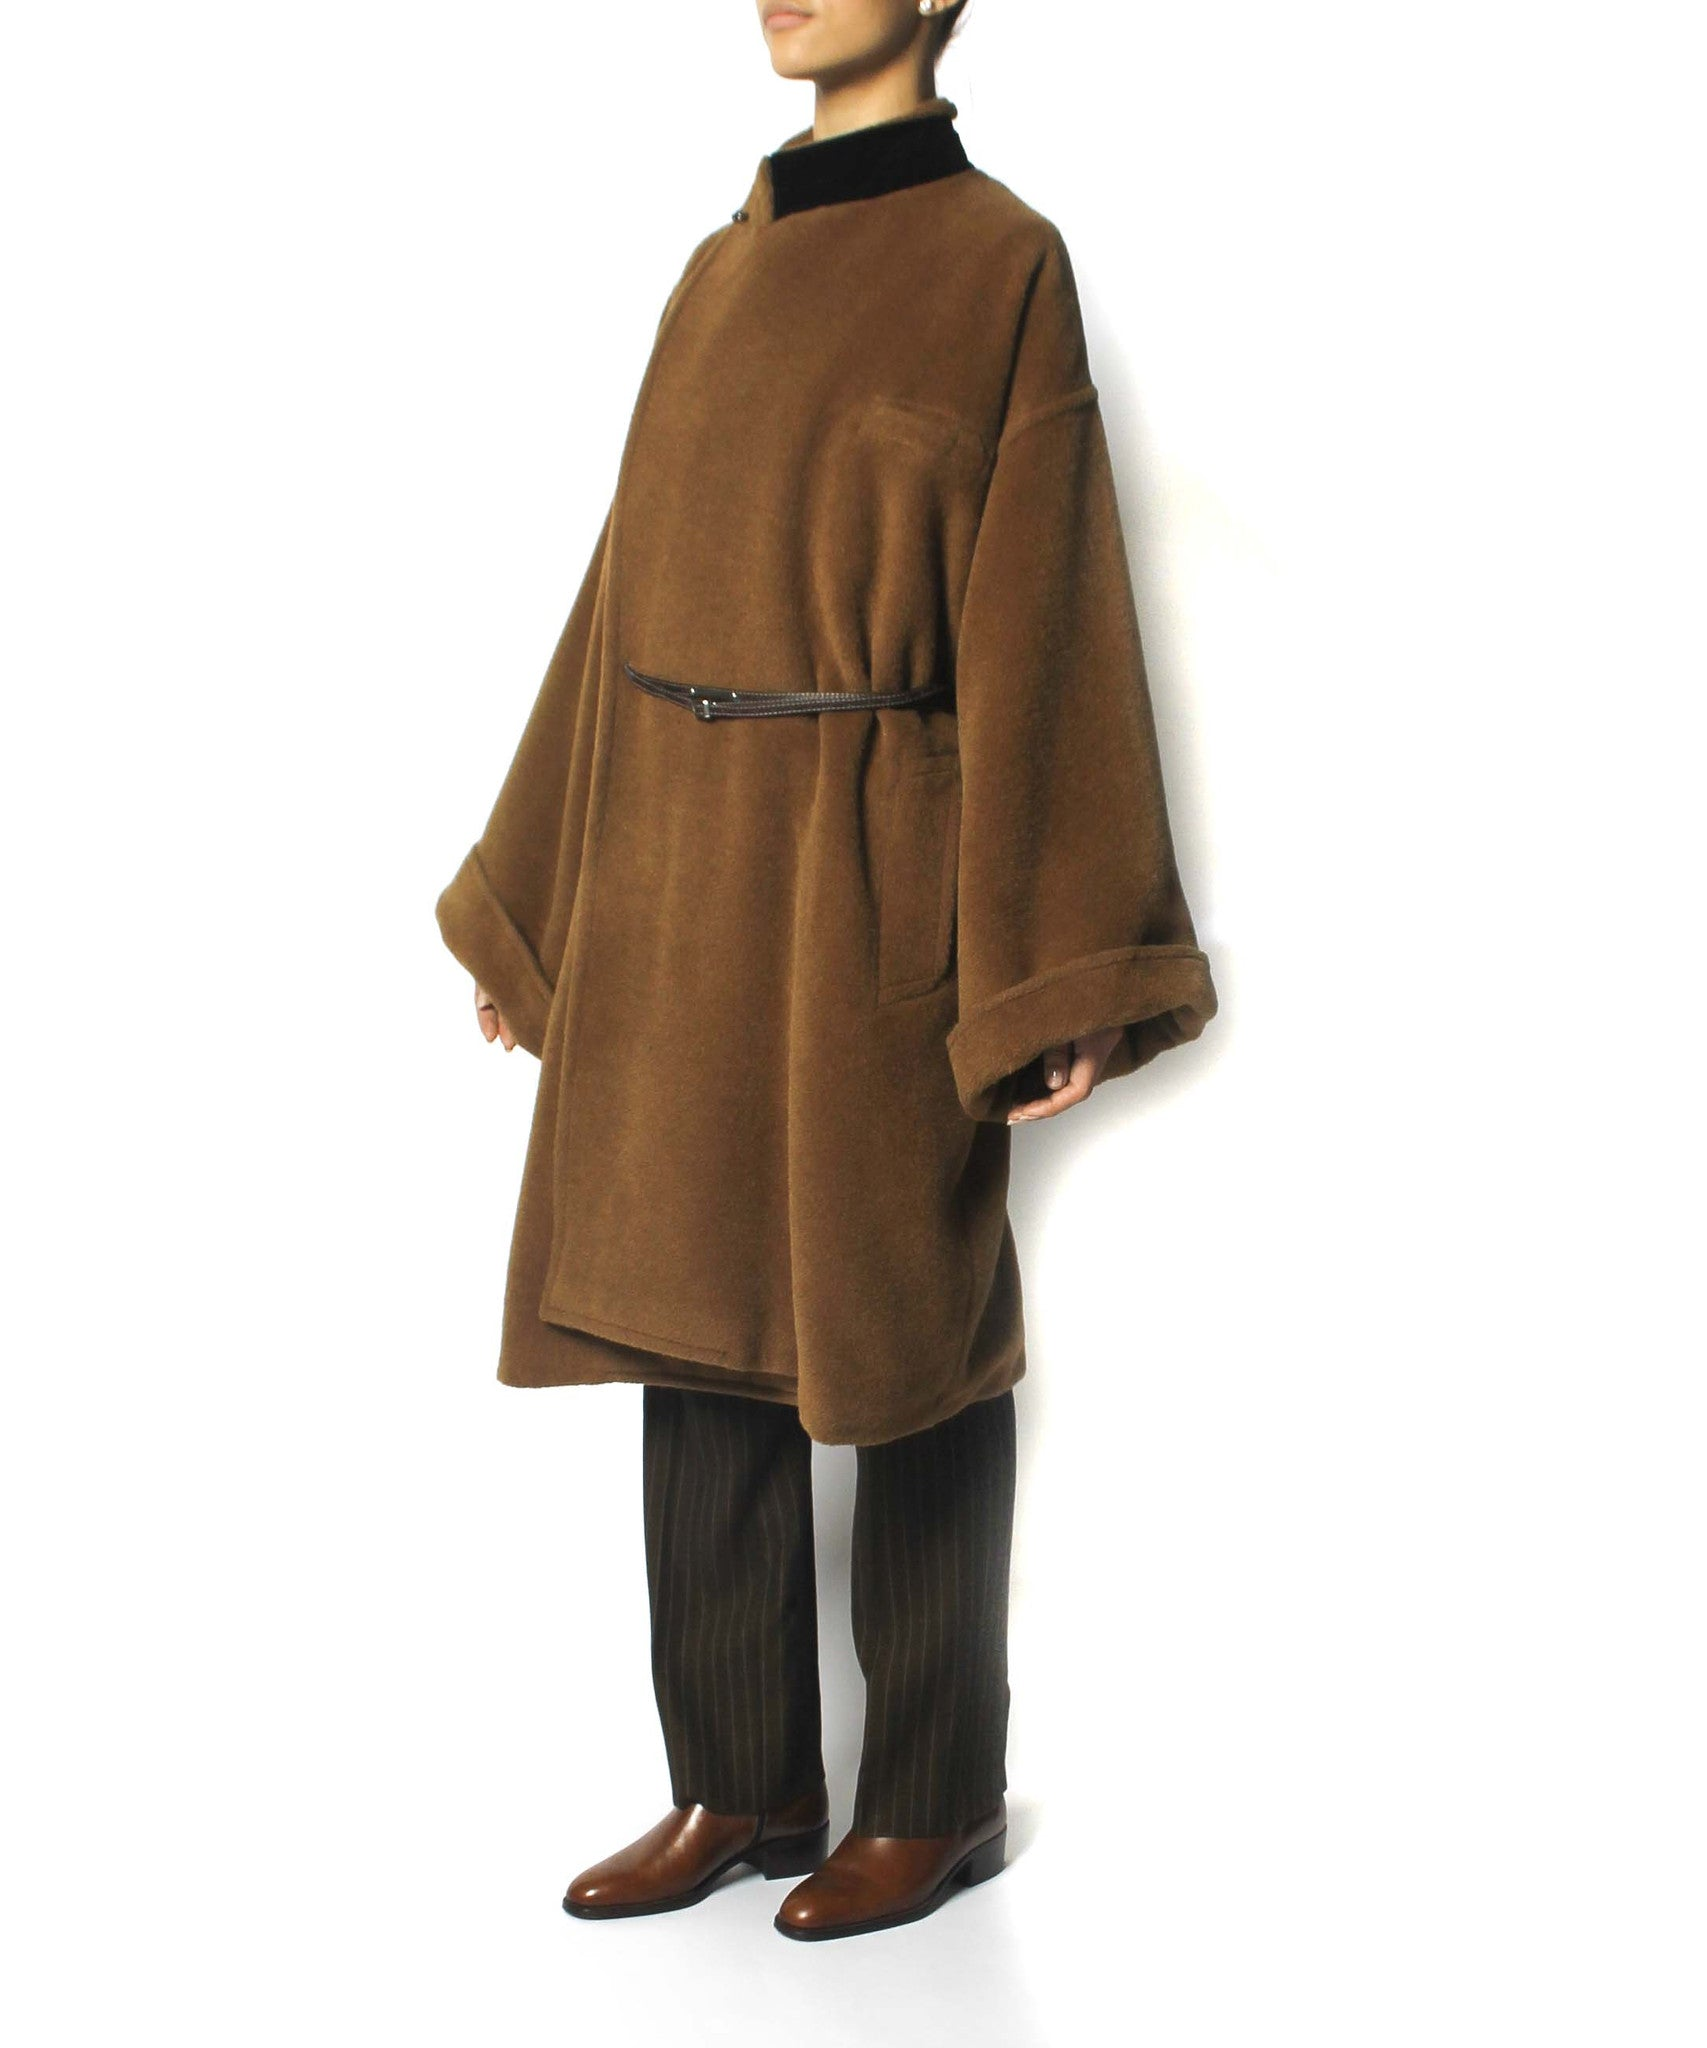 Jean Paul Gaultier 90s Caramel Brown Camel Hair Oversized Coat With Belt - C.Madeleine's